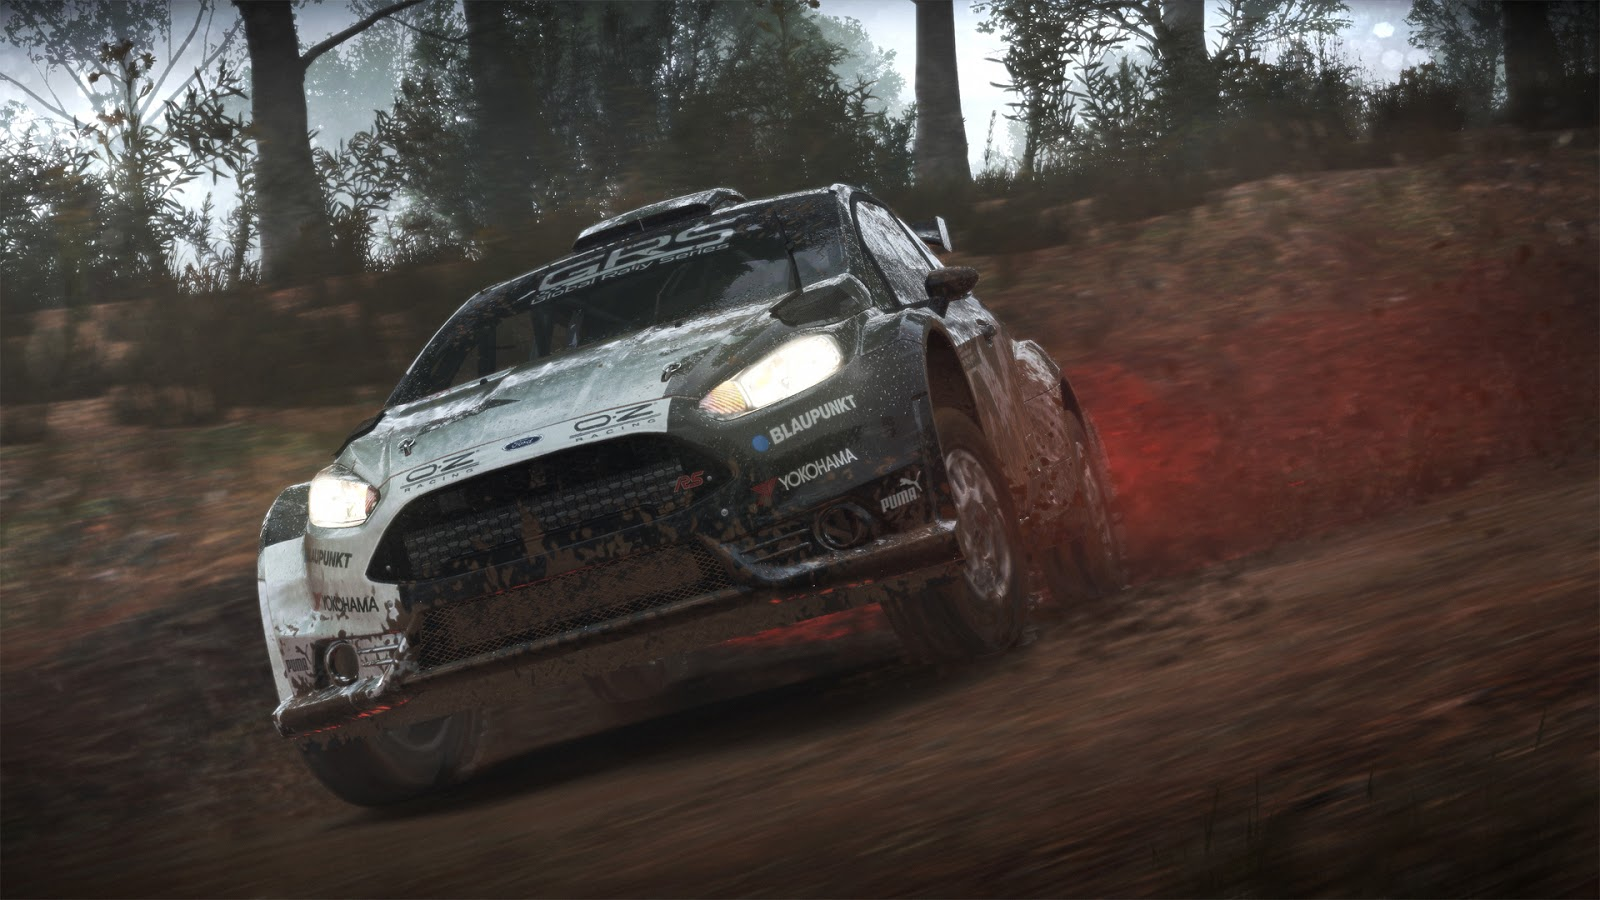 DiRT 4 ESPAÑOL PC (RELOADED) + Update v1.06 (BAT) + REPACK 5 DVD5 (JPW) 8